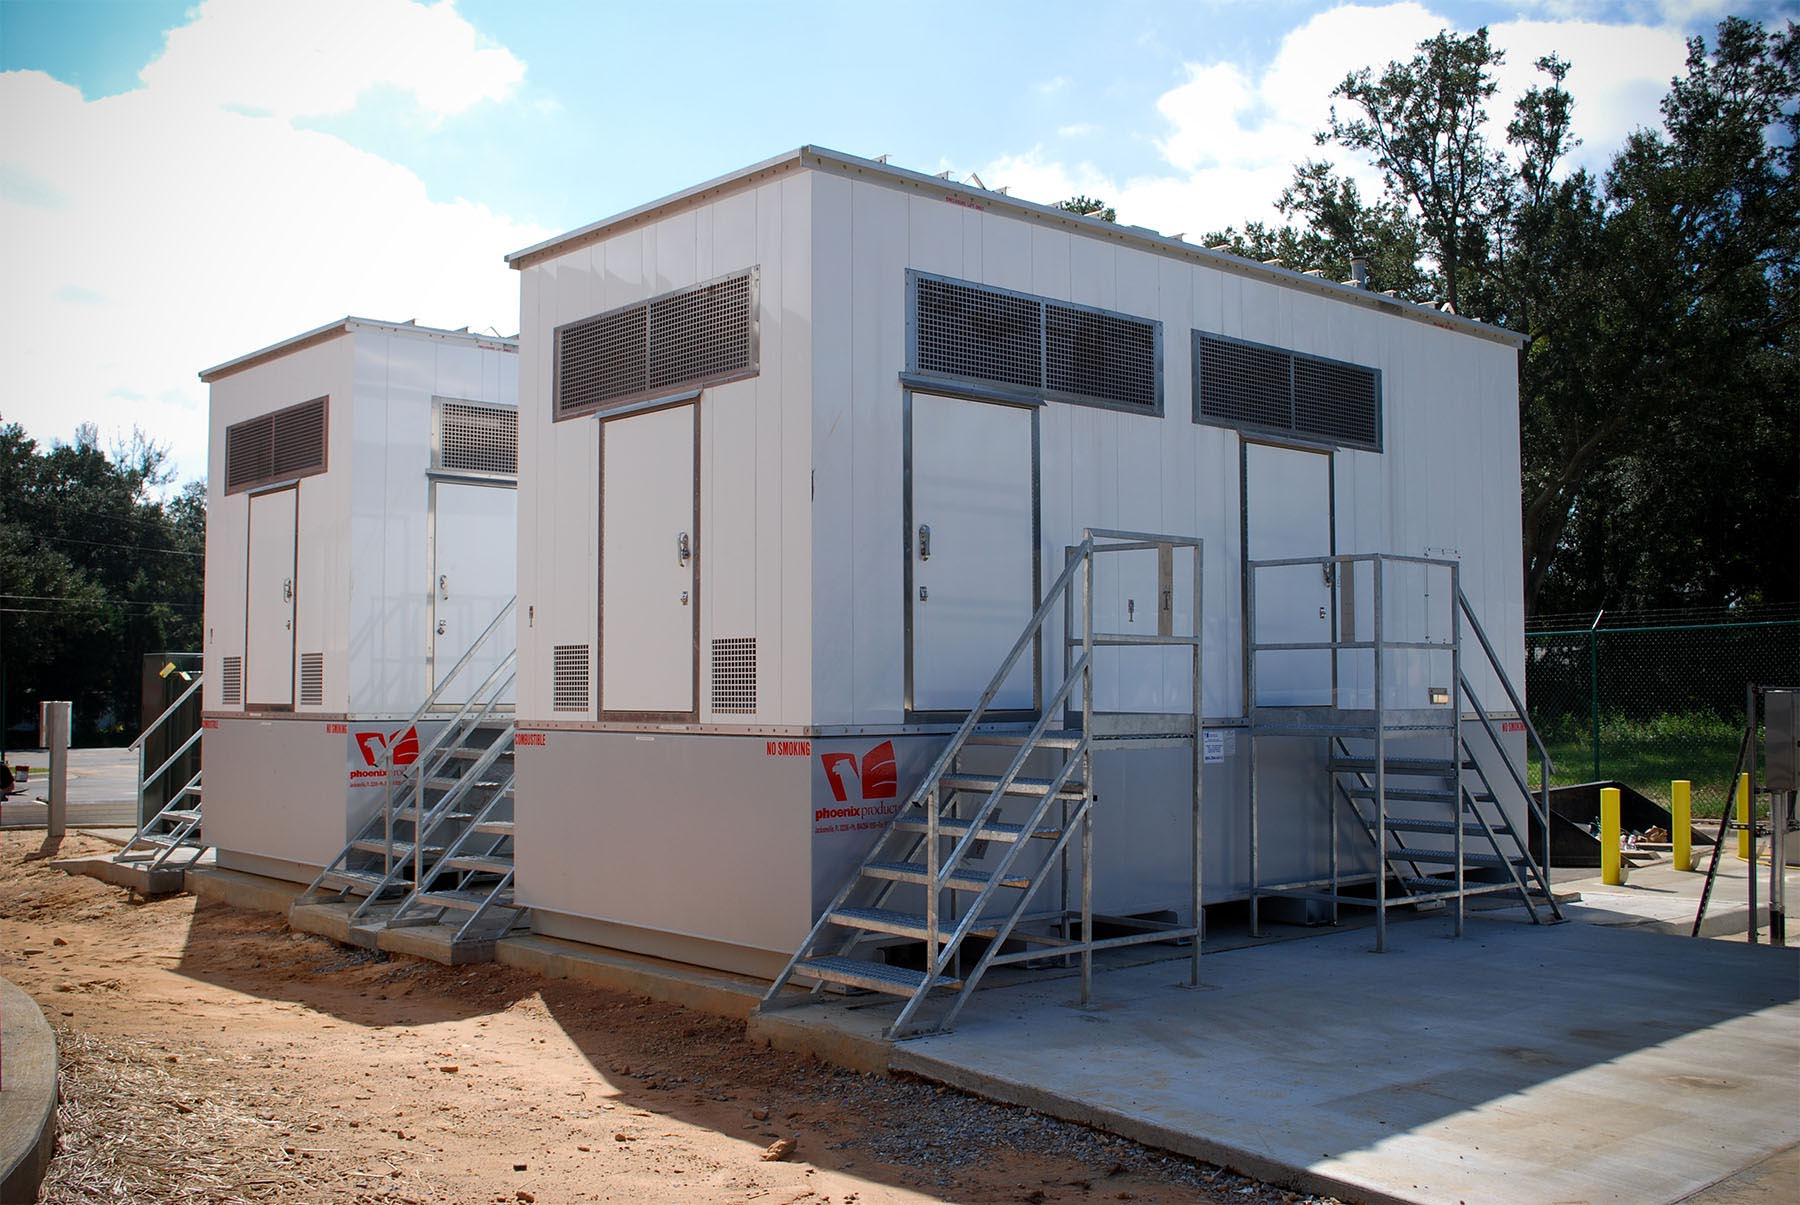 Custom-Generator-Enclosures-With-Sub-Base-Fuel-Tanks-And-Custom-Stairs-For-Lift-Station